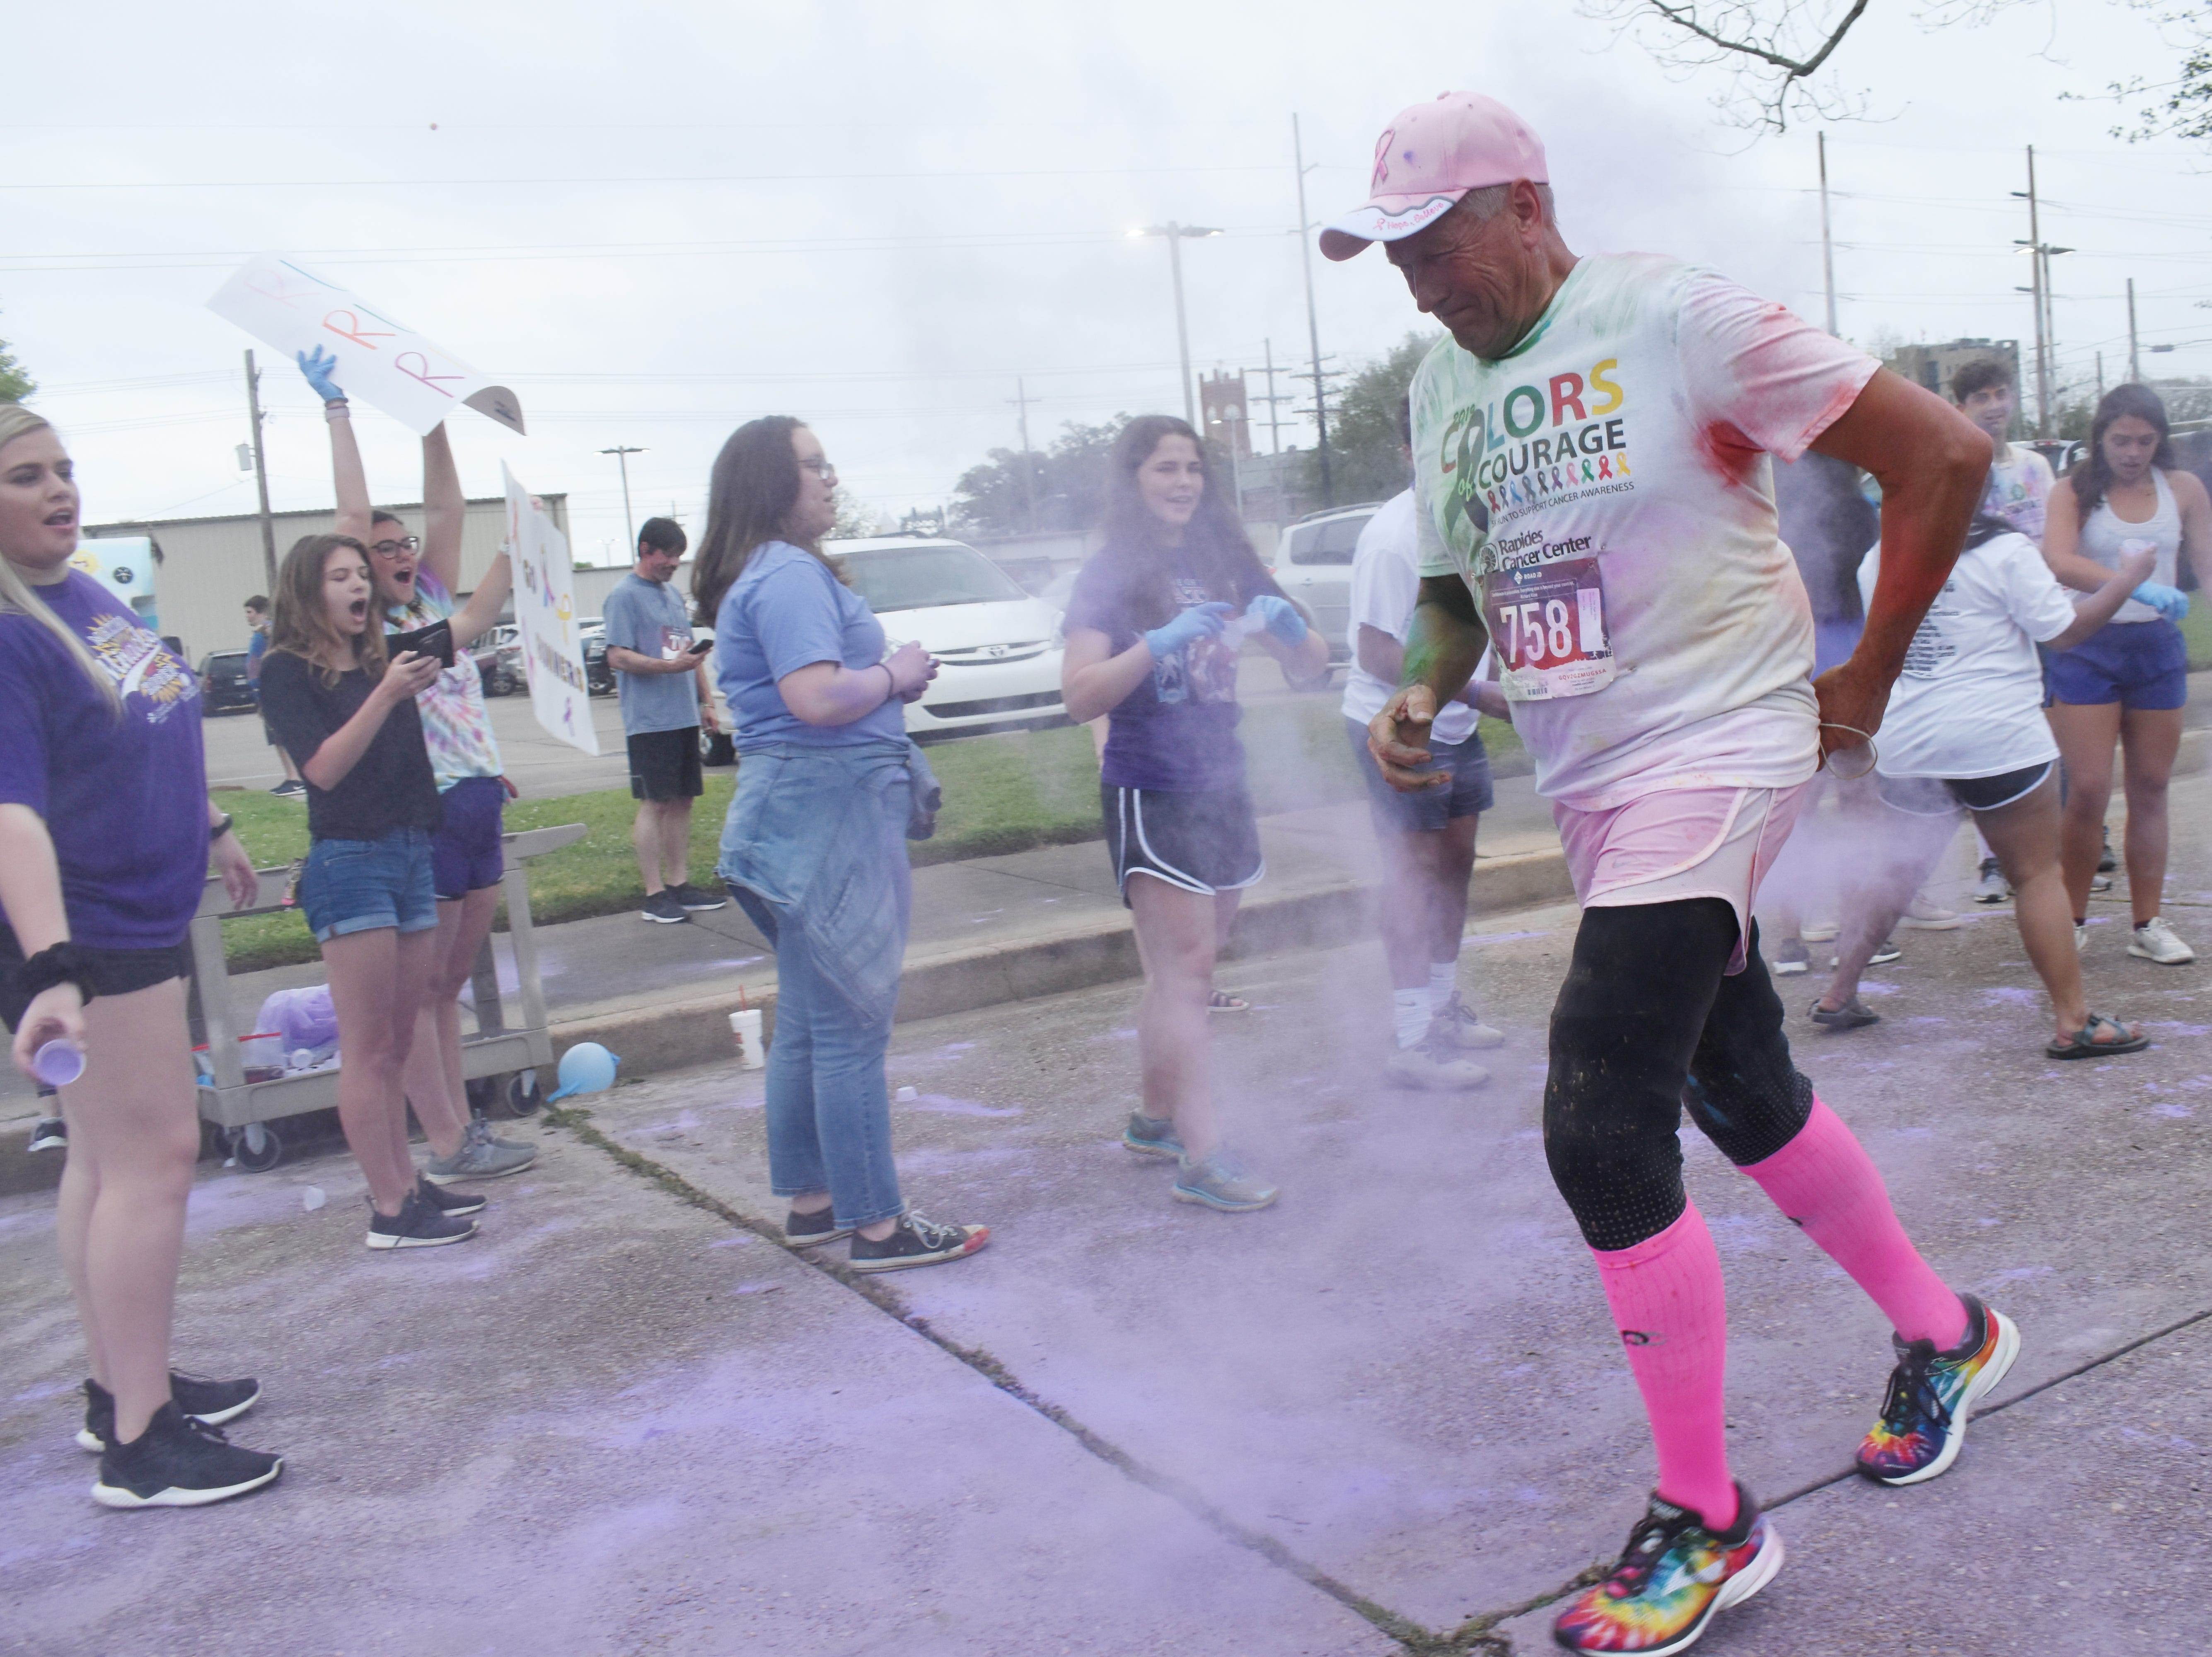 Over 200 walkers and runners participated in the Rapides Cancer Center's 4th annual Colors of Courage 5K and Color Run Friday, April 5, 2019 in downtown Alexandria. Funds raised by Colors of Courage is donated to the American Cancer Society. Over $17,000 has been donated from the last three Colors of Courage 5K and Color Run.